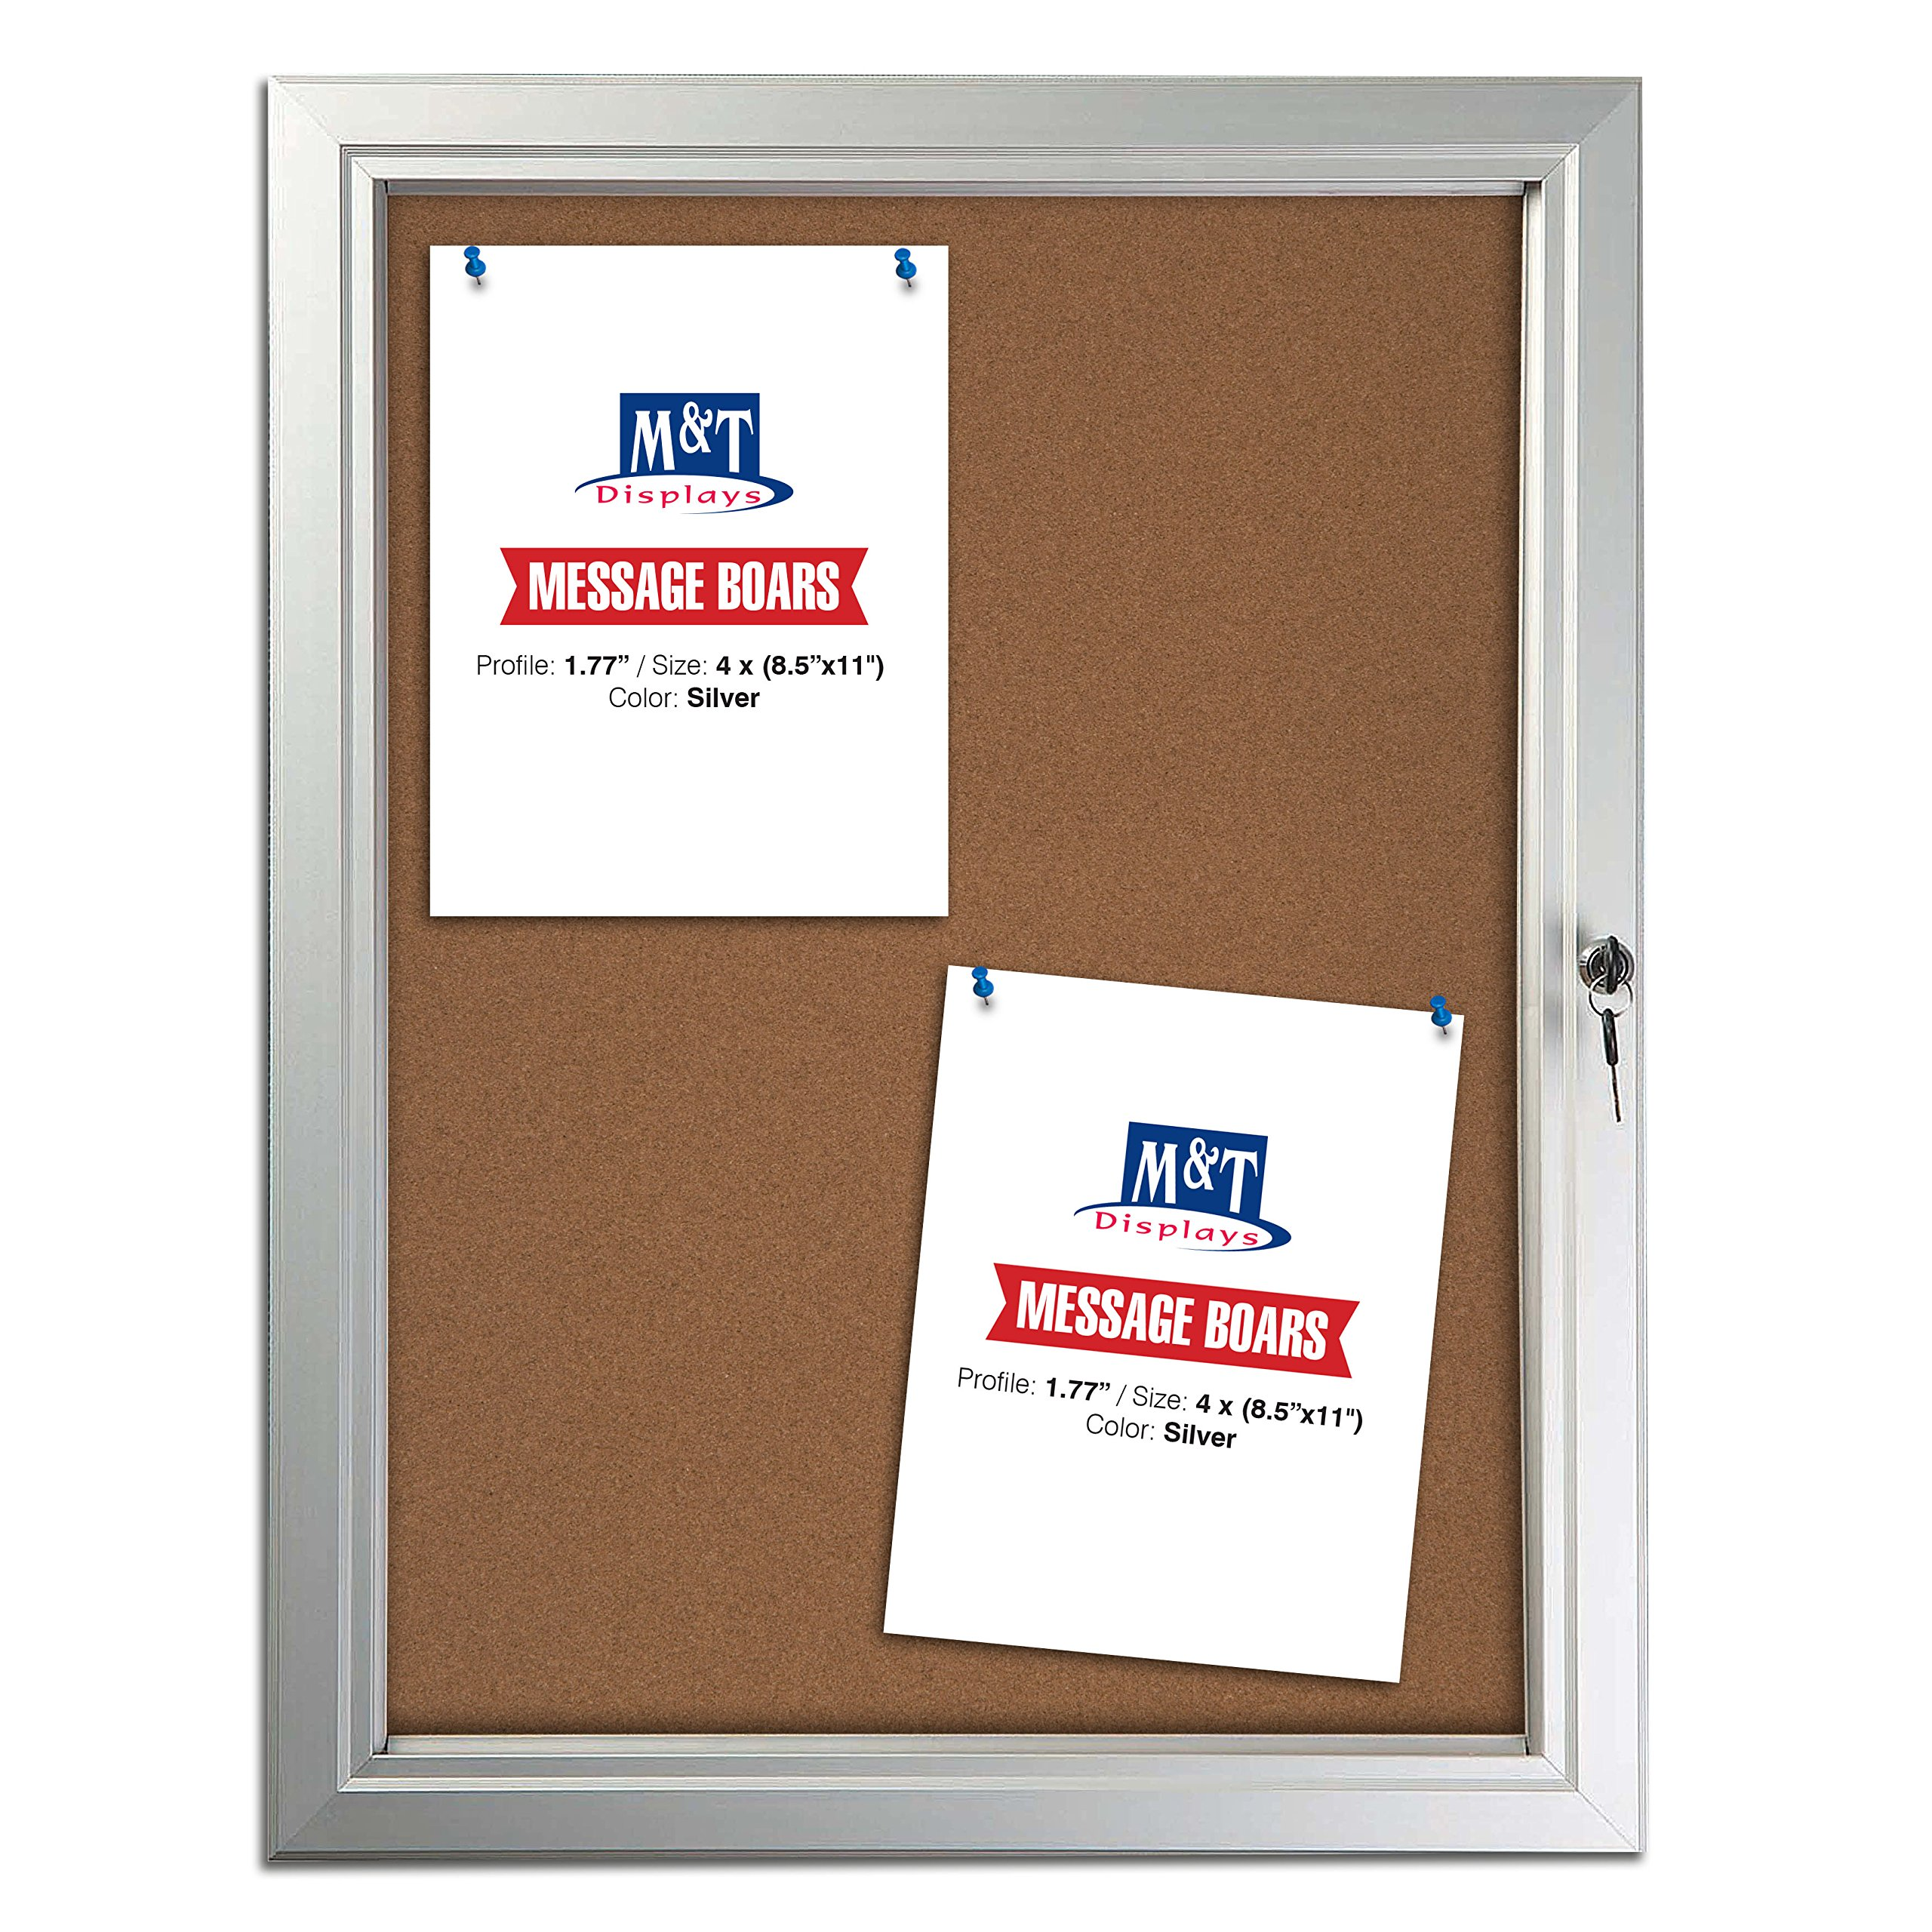 DisplaysMarket Enclosed Bulletin Weatherproof Aluminum